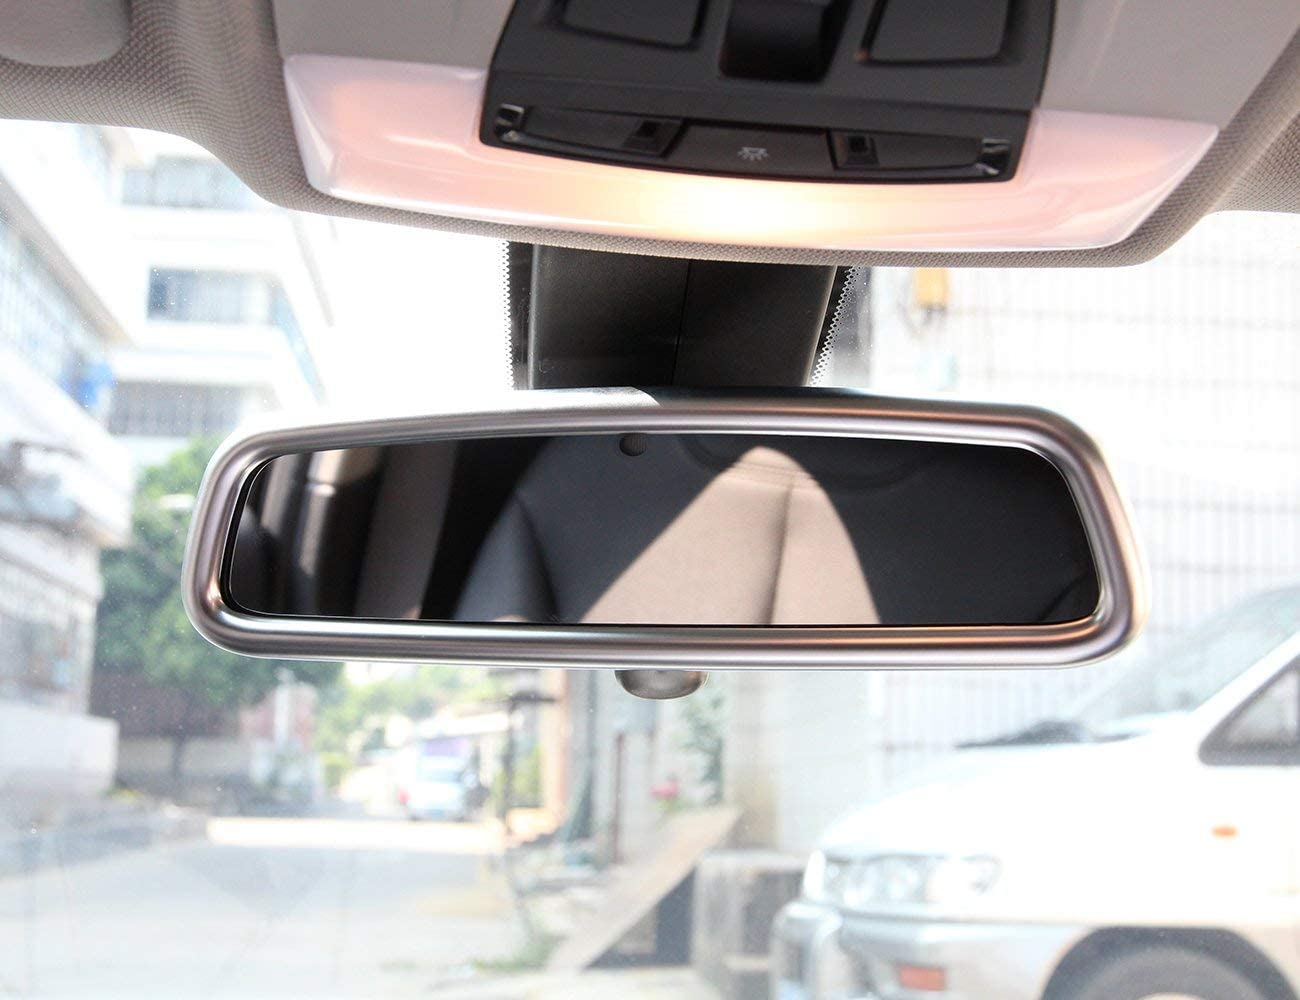 ABS Chrome car Interior Accessories AUTO Pro for Land Rover//BMW//Jaguar//Mercedes-Benz Interior Rearview Mirror Cover Trim